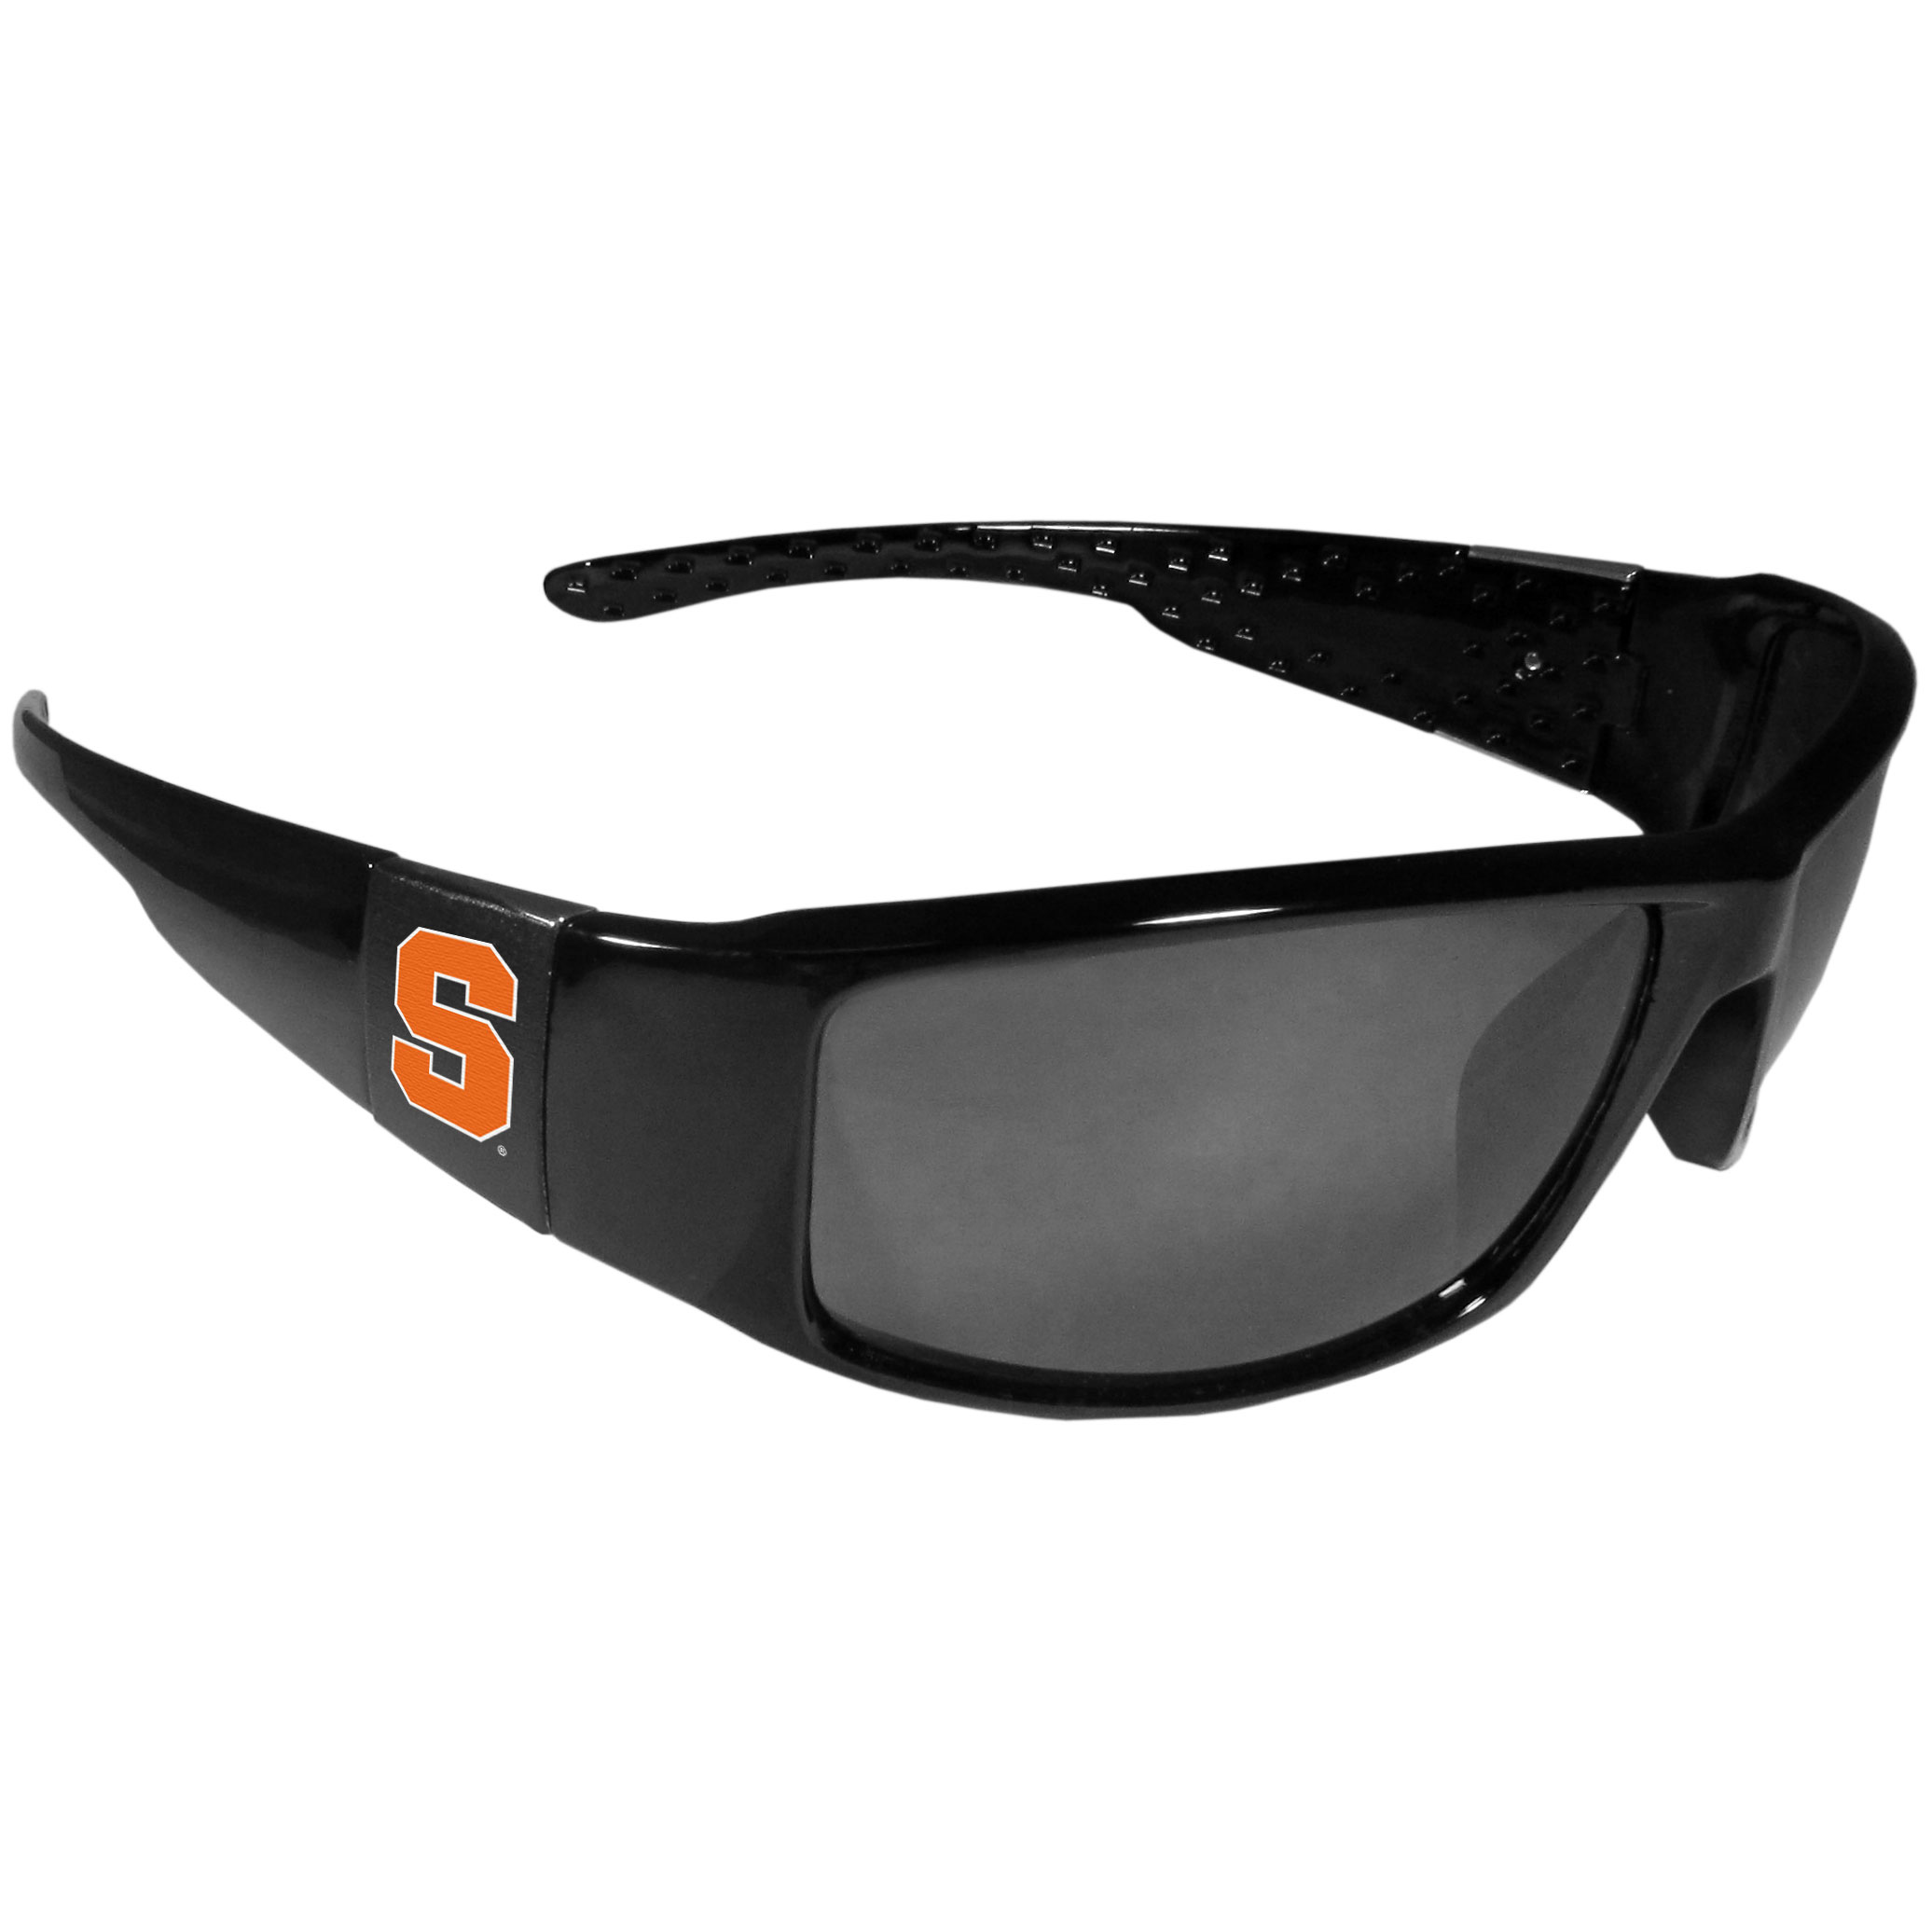 Syracuse Orange Black Wrap Sunglasses - These designer inspired frames have a sleek look in all black with  Syracuse Orange shields on each arm with a printed logo. The shades are perfect for any outdoor activity like; golfing, driving, hiking, fishing or cheering on the team at a tailgating event or at a home game day BBQ with a lens rating of 100% UVA/UVB for maximum UV protection. The high-quality frames are as durable as they are fashionable and with their classic look they are the perfect fan accessory that can be worn everyday for every occasion.